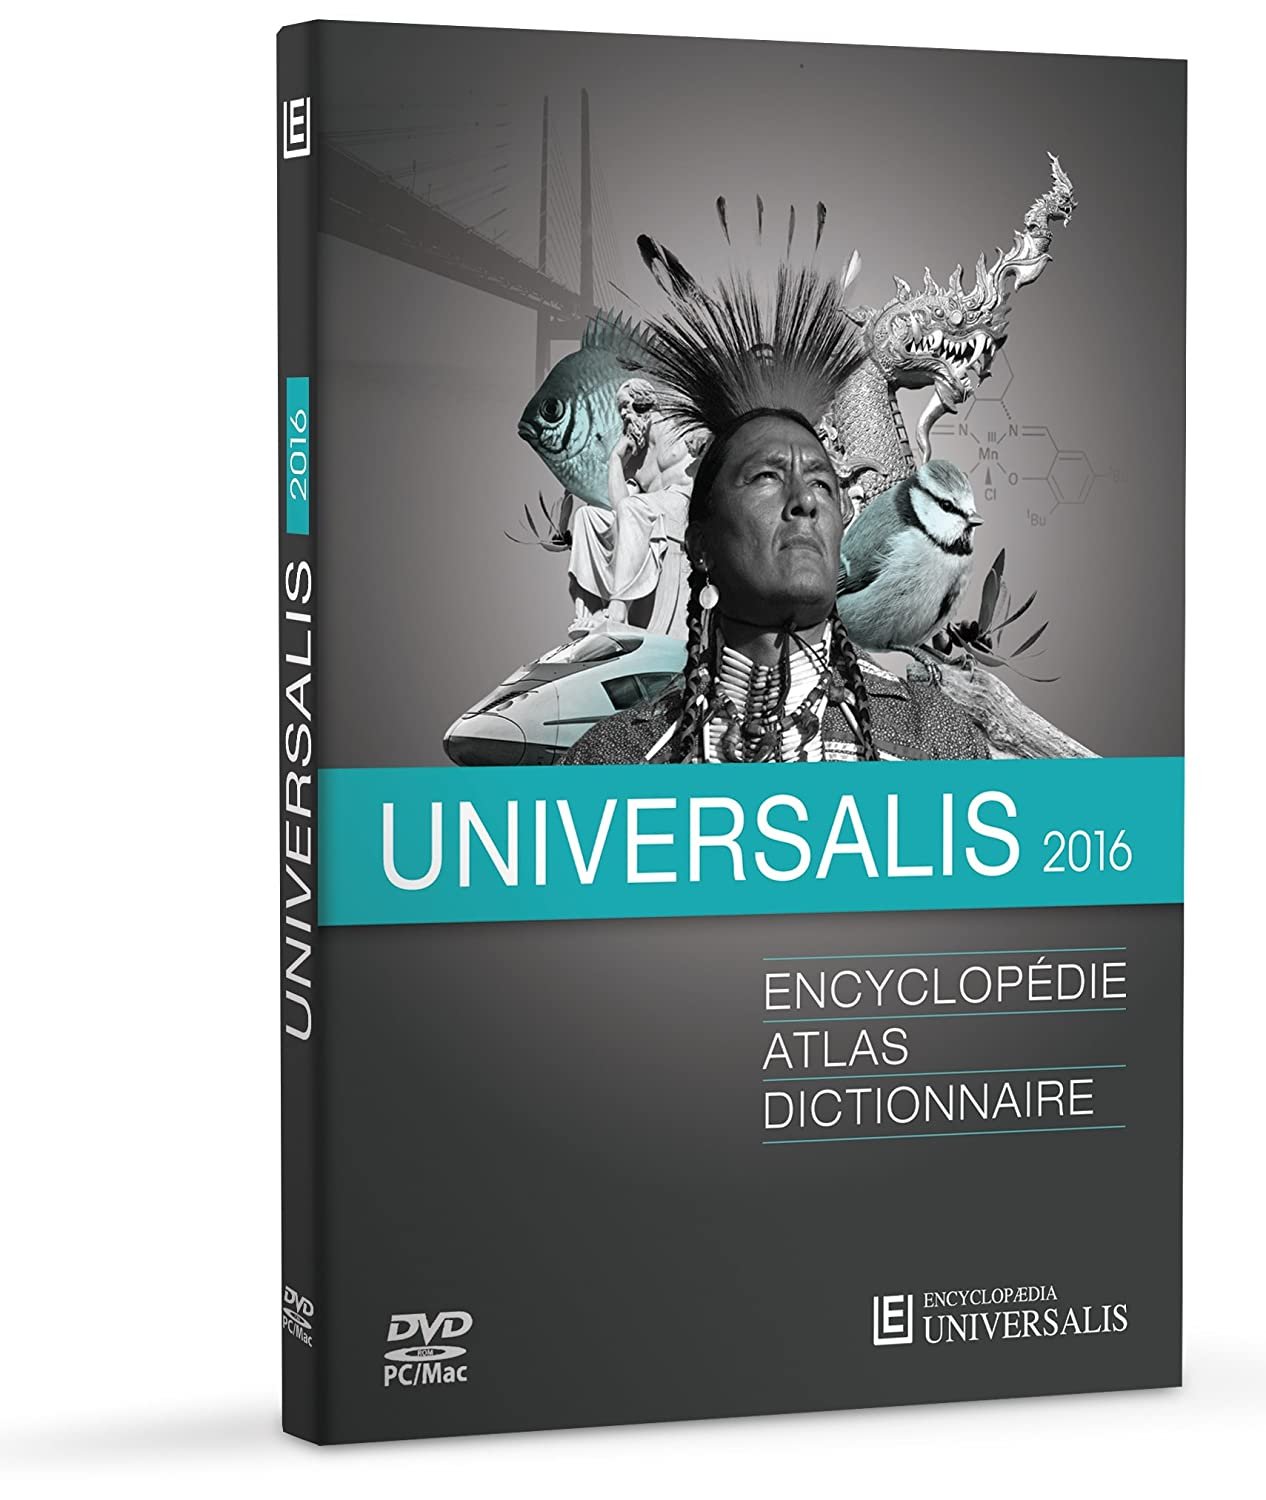 encyclopedie universalis telecharger gratuit